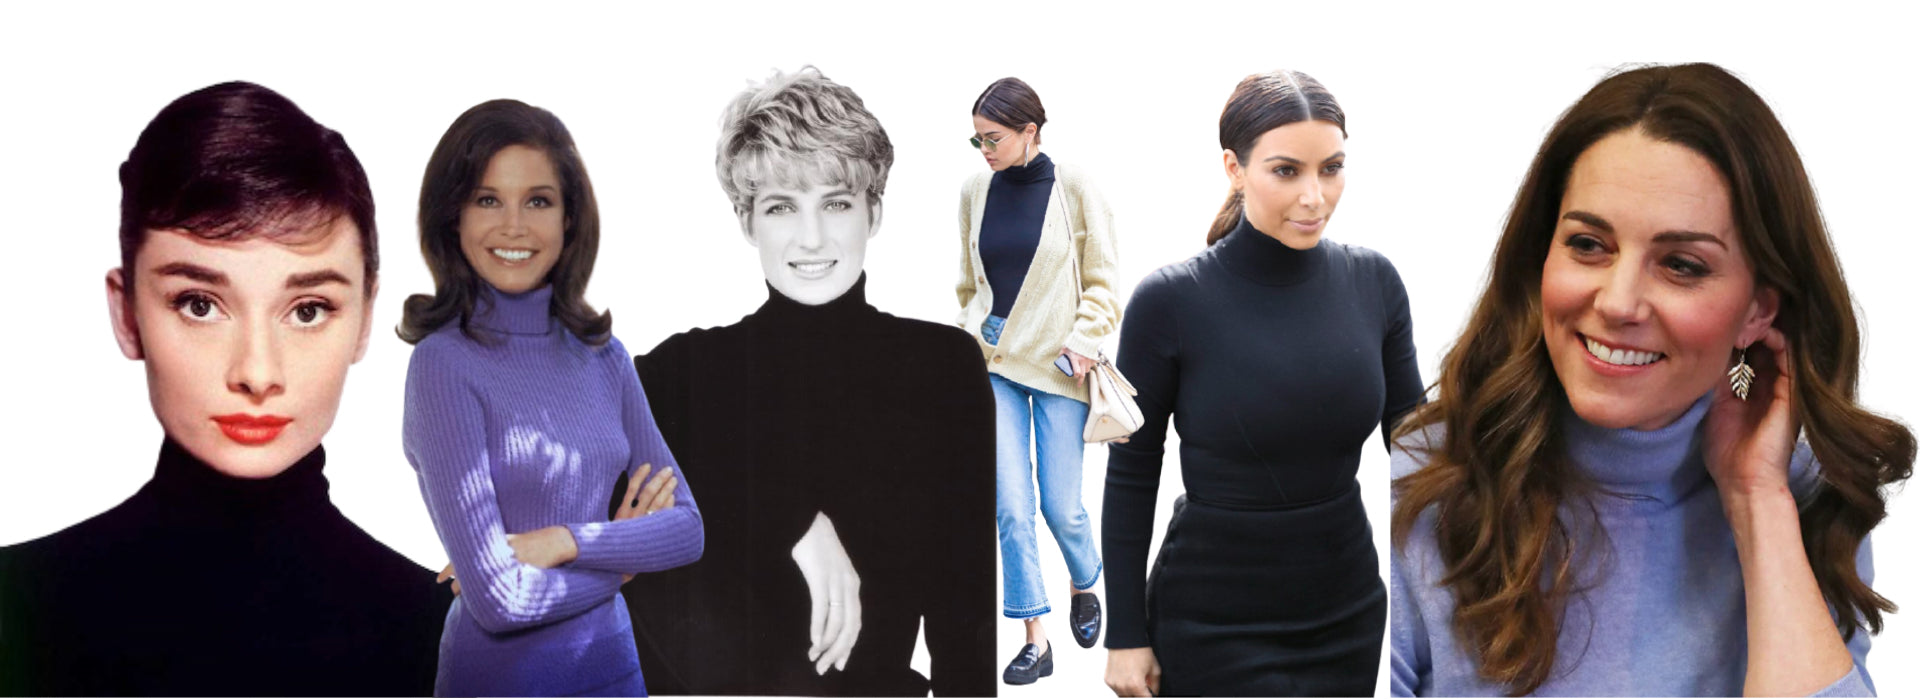 polo neck jumper icons